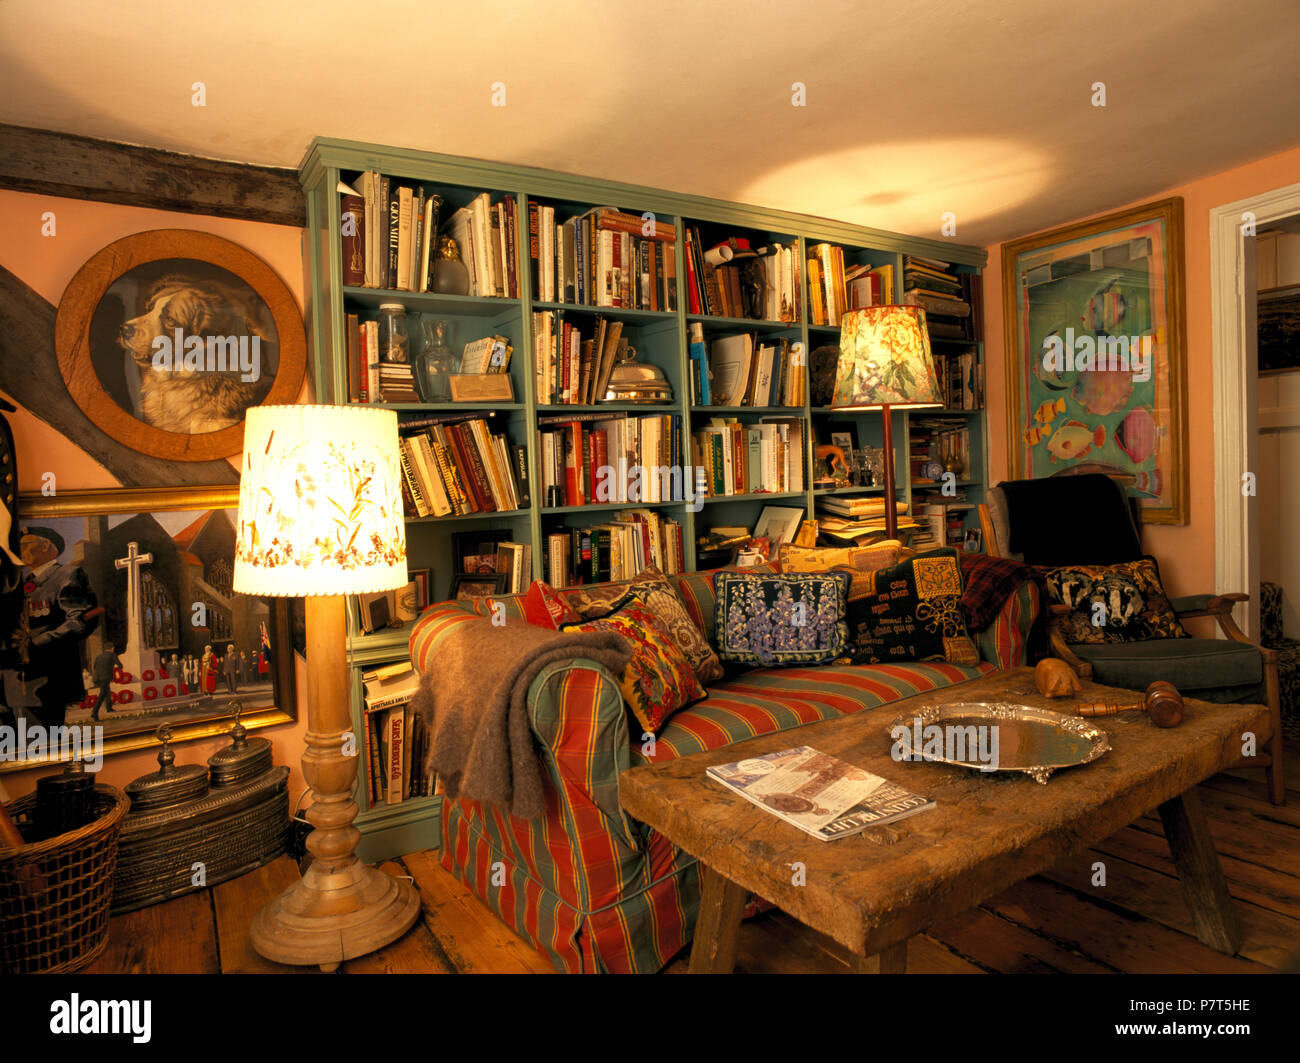 Swell Green Bookshelves In Cluttered And Old Fashioned Cottage Download Free Architecture Designs Jebrpmadebymaigaardcom